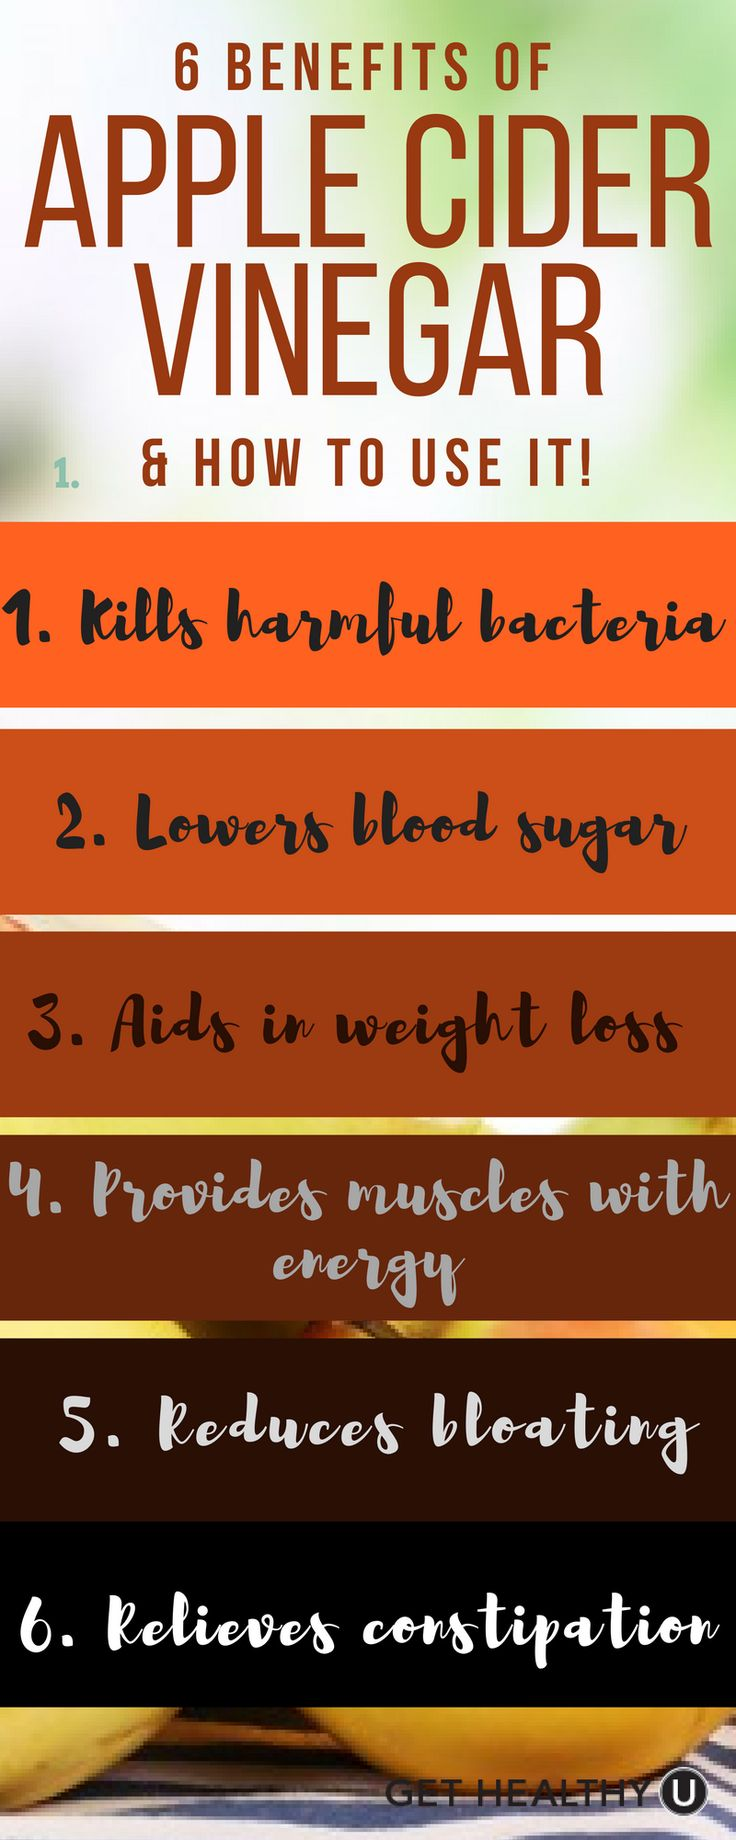 Have you been hearing about benefits of Apple Cider Vinegar? Combat issues like fatigue, bloating, digestive issues & more.. Check out our article on the 6 benefits of ACV and how to use it!